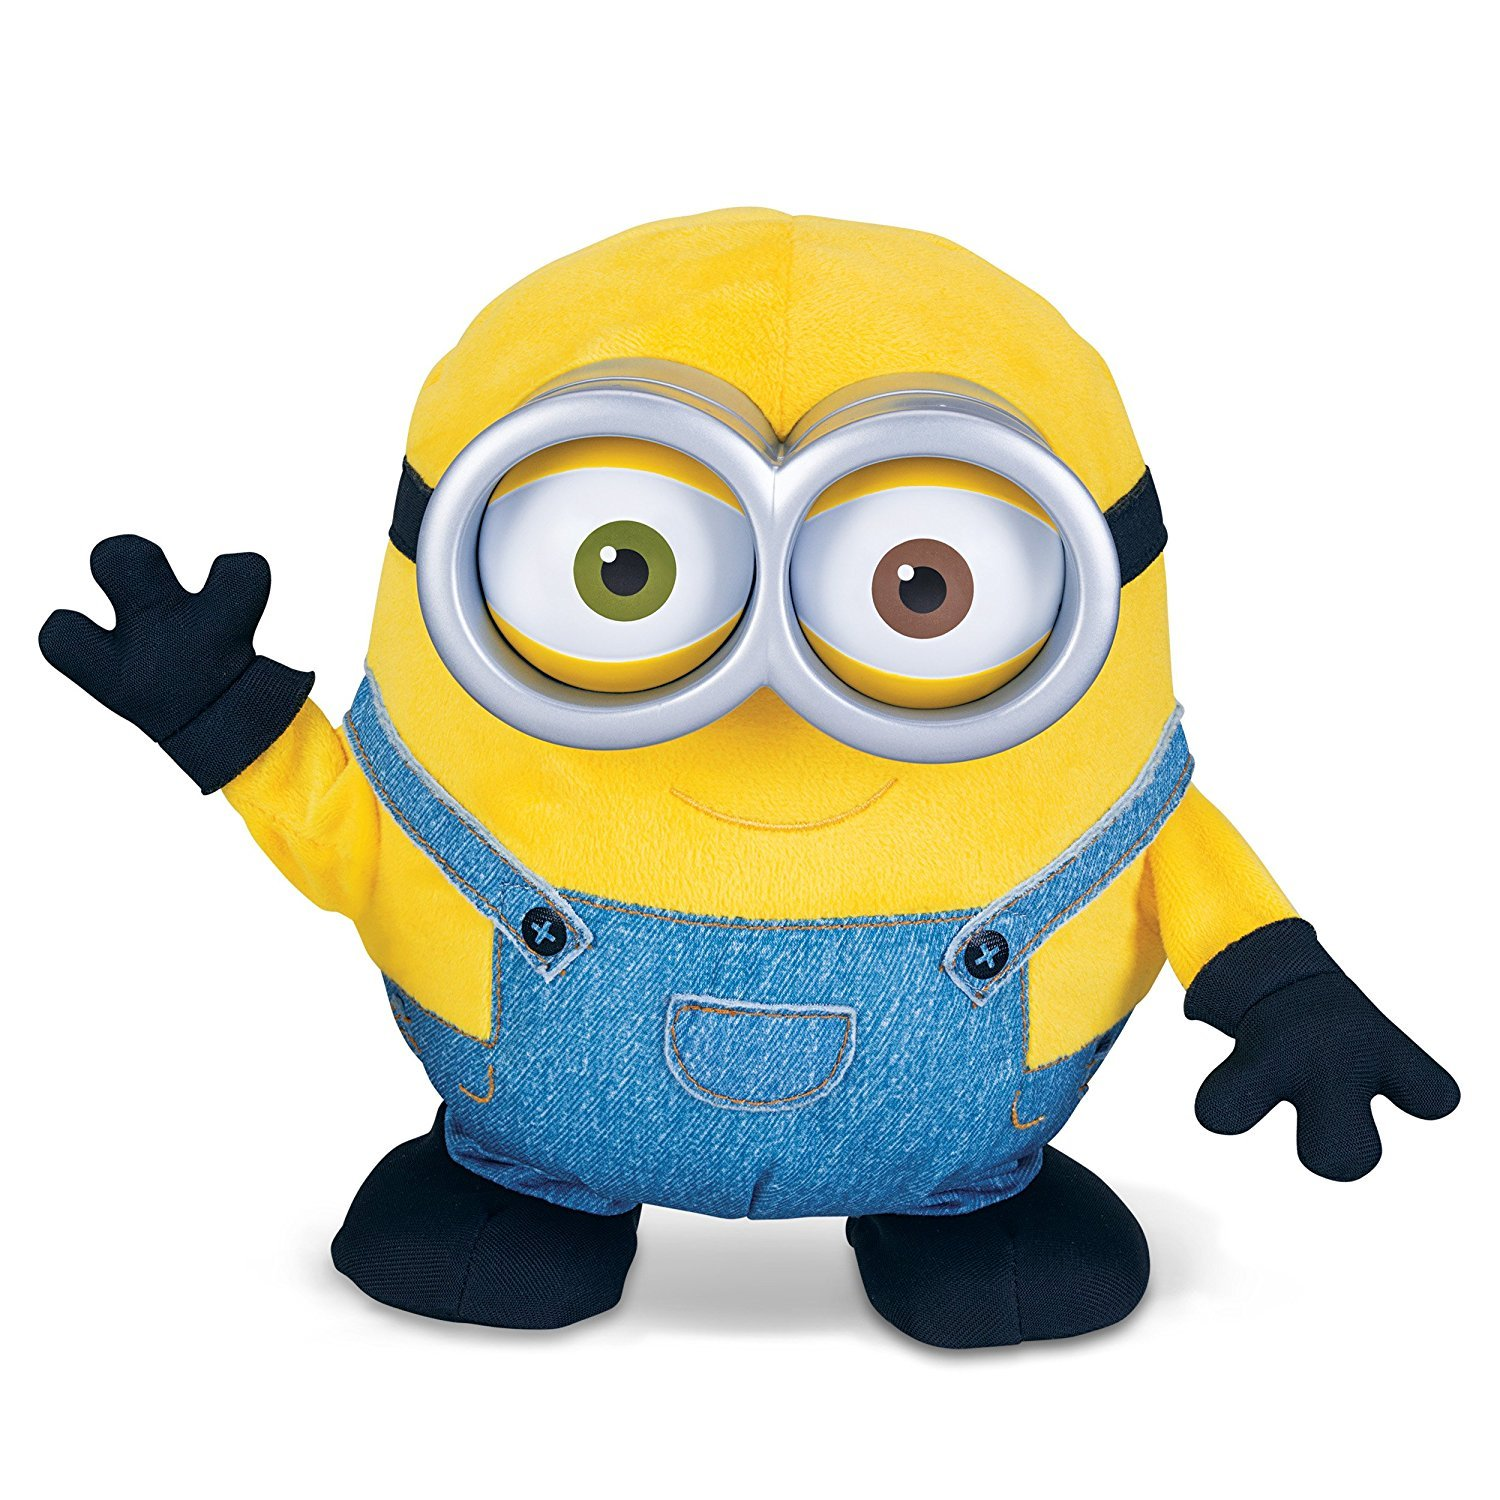 Minion Facts 18 Interesting Facts About Minions